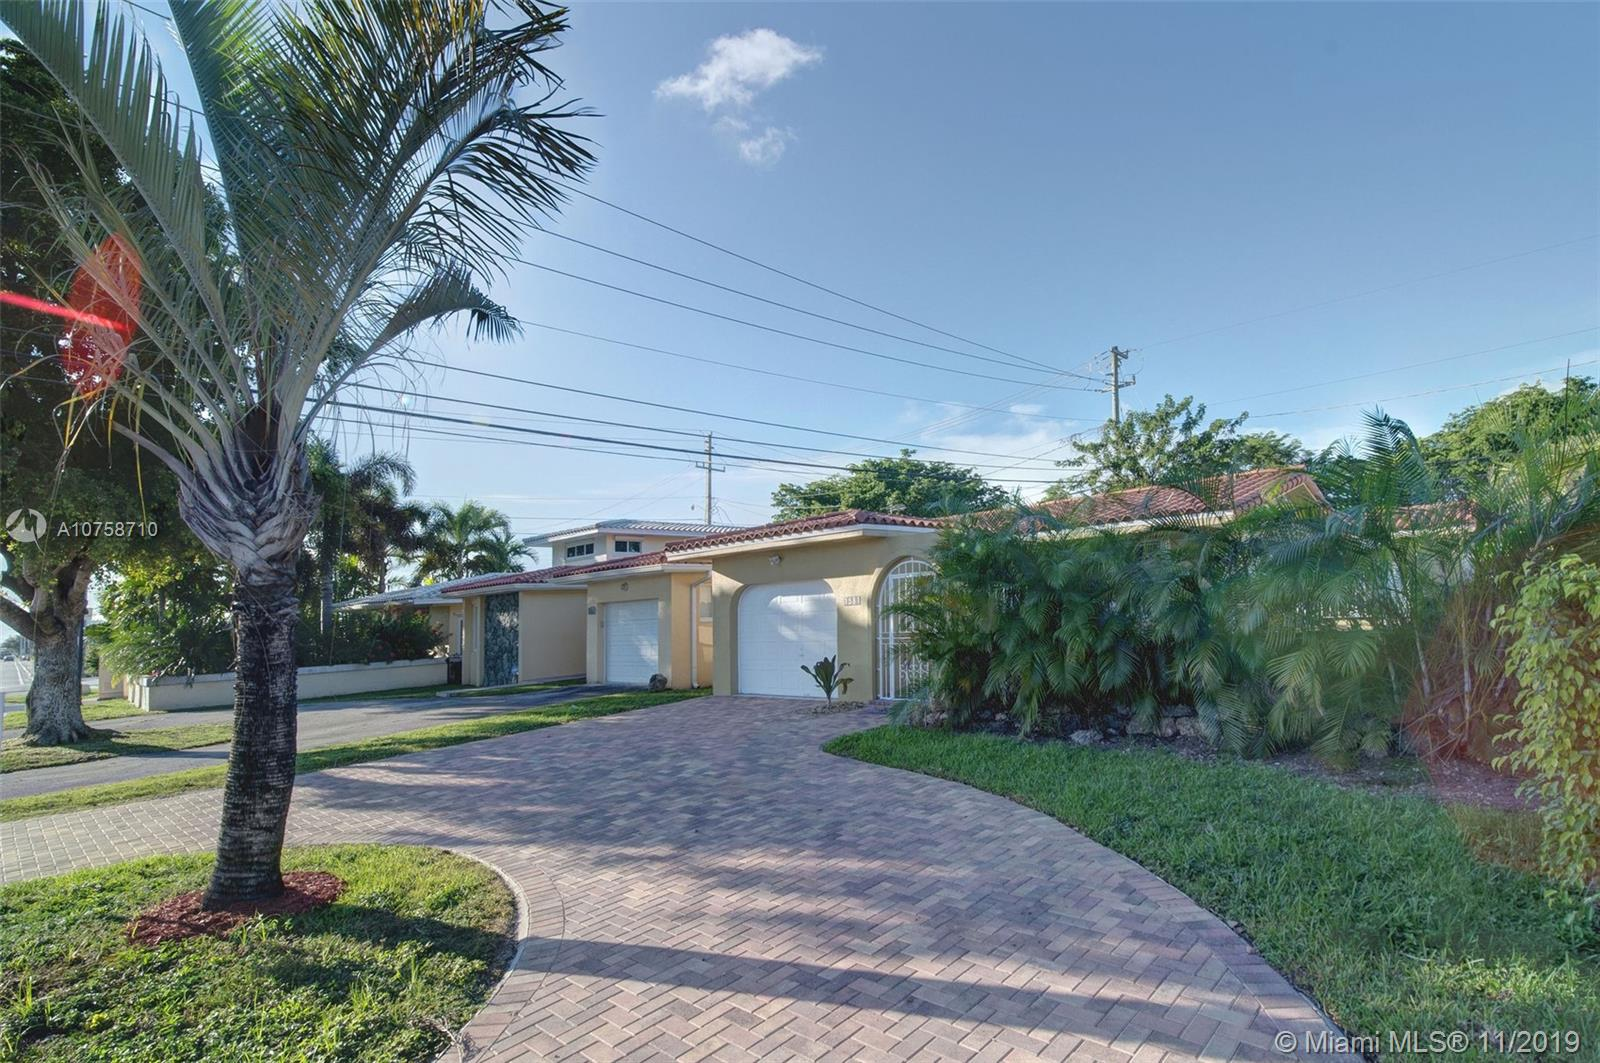 1581 Bird Rd – Coral Gables